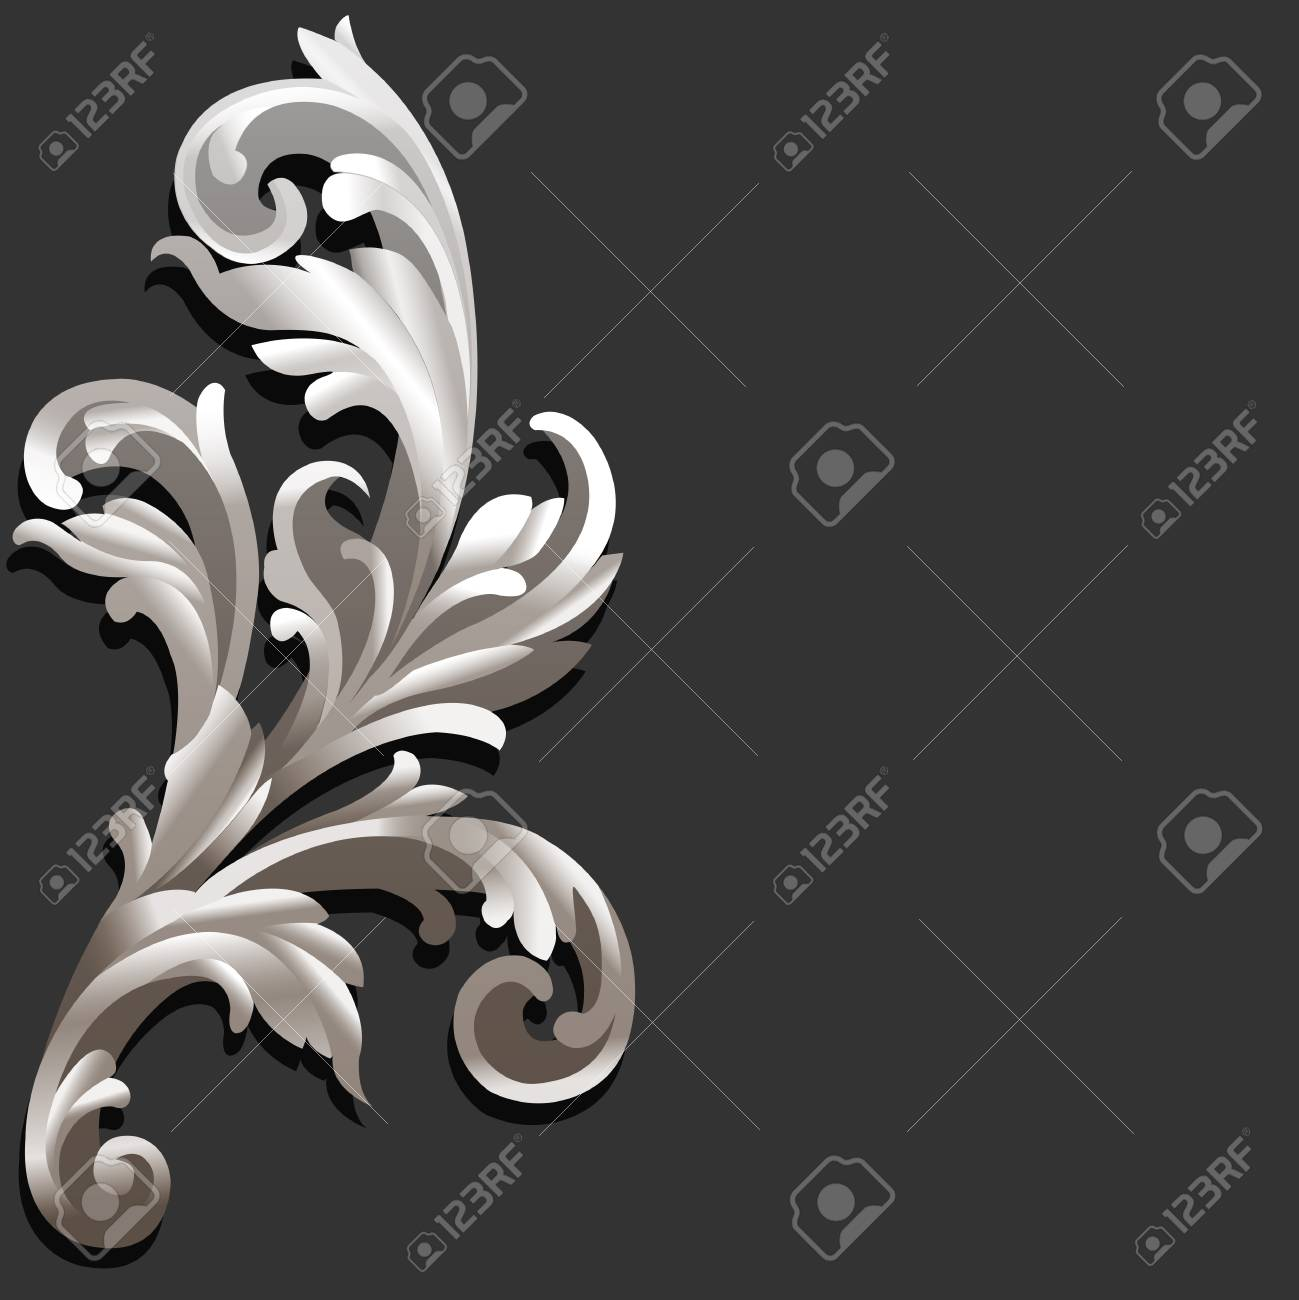 3d Floral Vintage Style vector illustration Stock Vector - 21132480